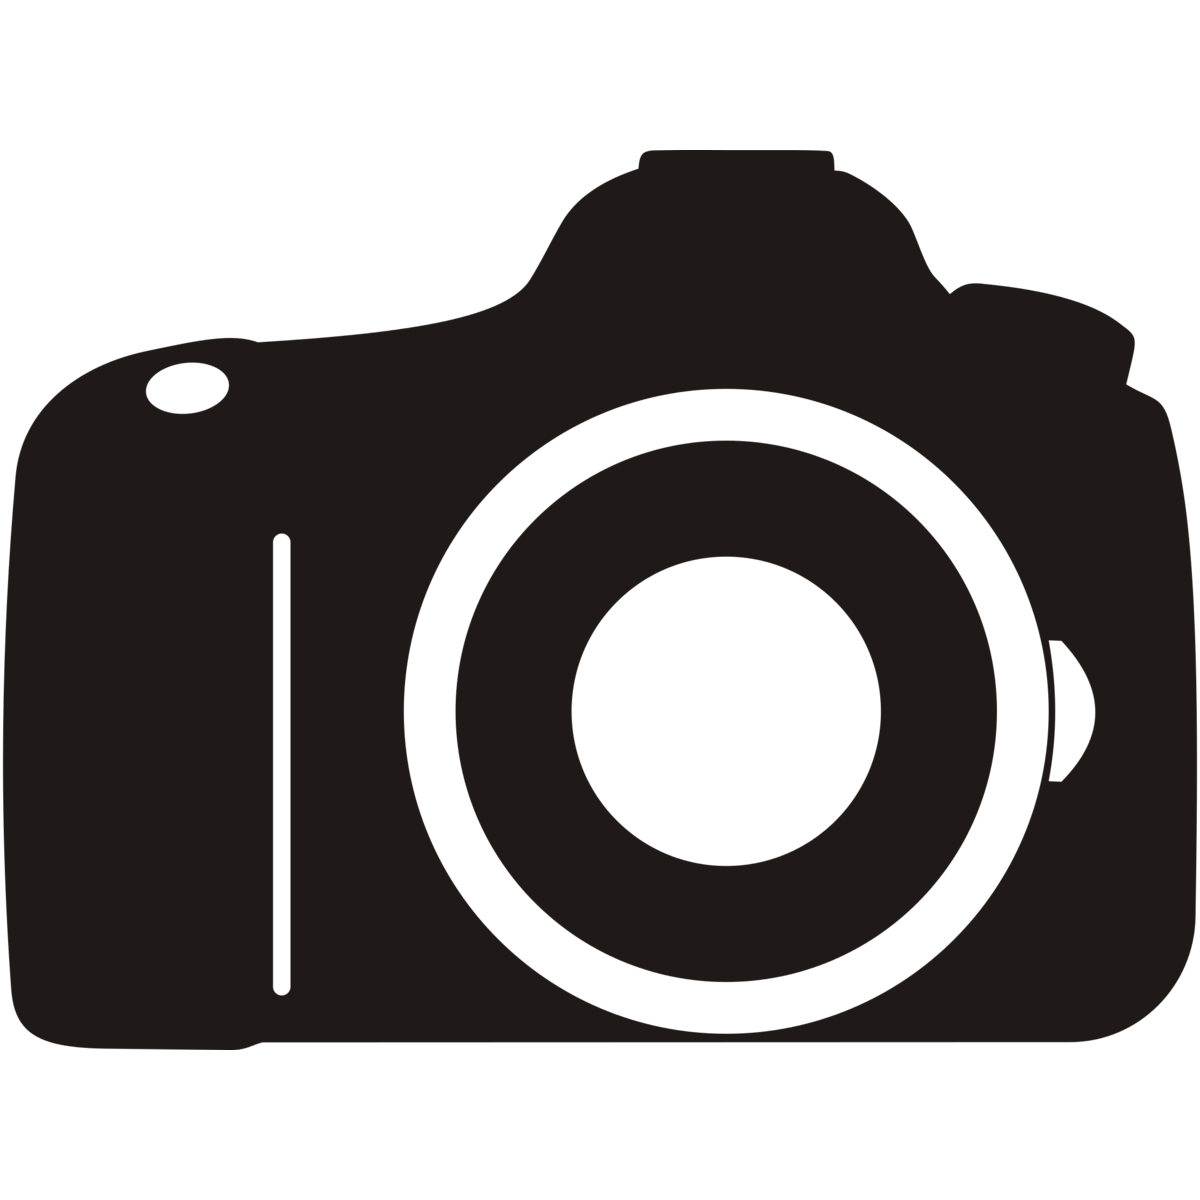 White clipart camera. Black and png station